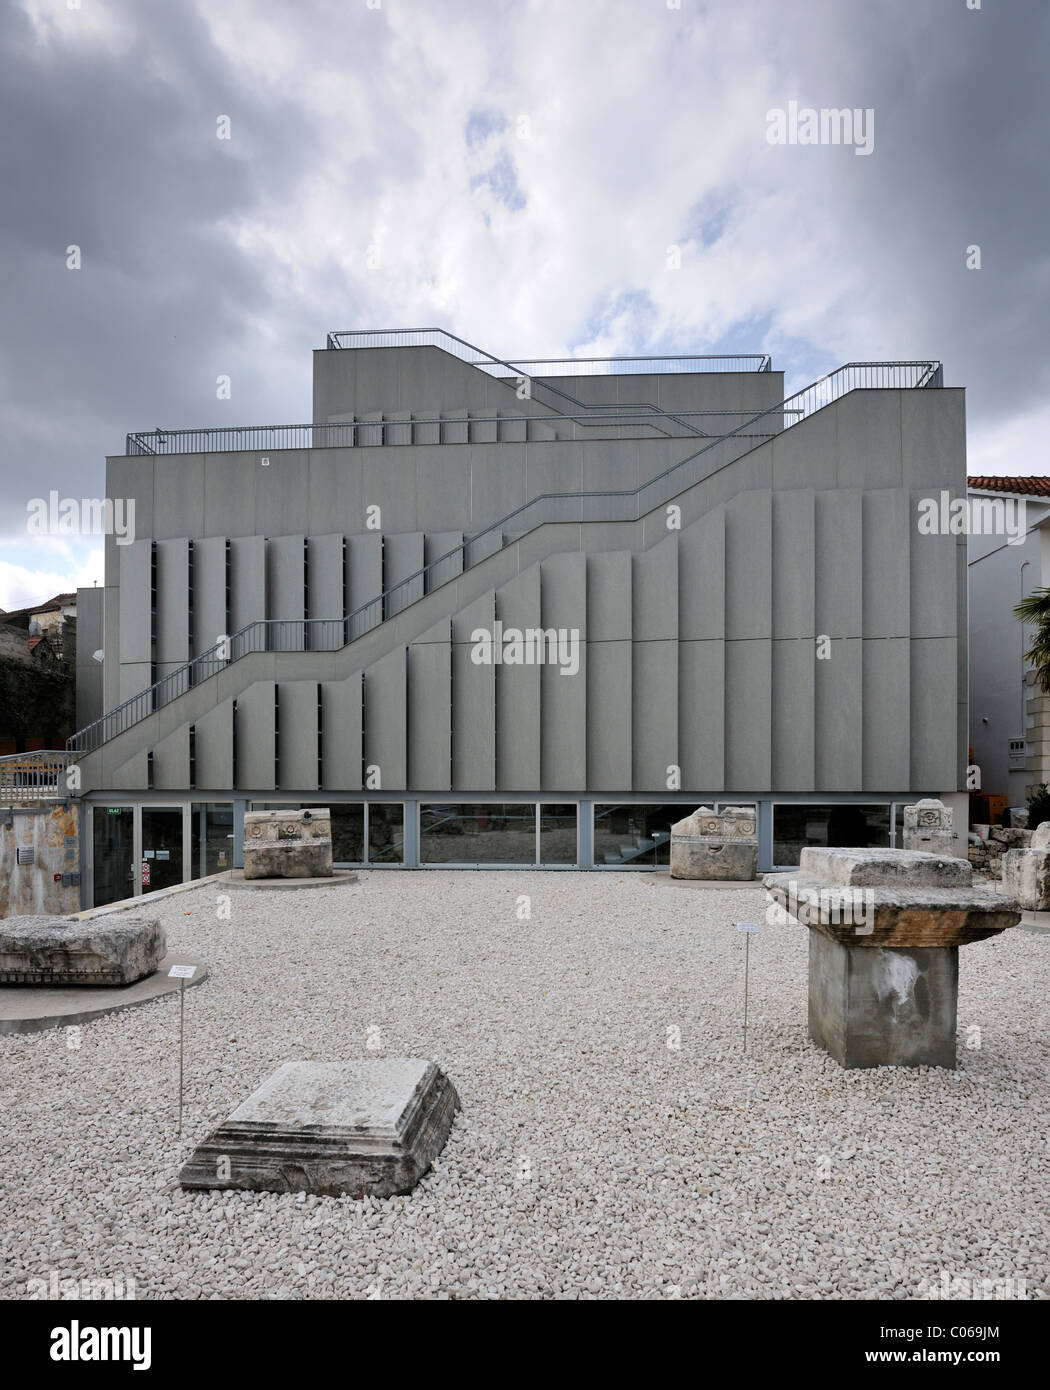 Modern Architecture Europe modern architecture characterizes the archaeological museum of